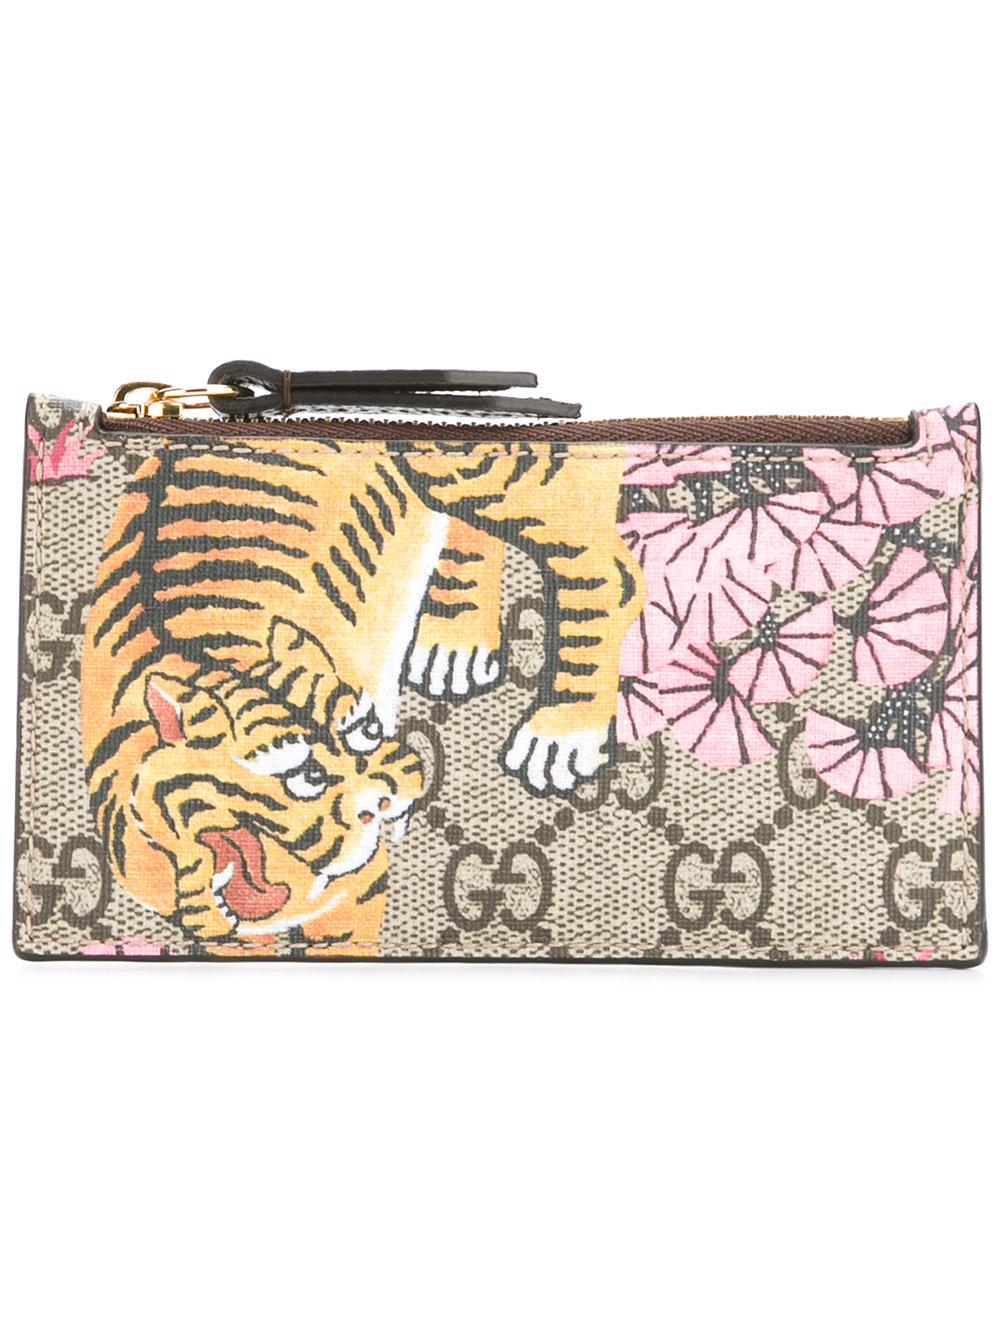 4c1cf7513993 Gucci Bengal Wallet For Girls | Stanford Center for Opportunity ...